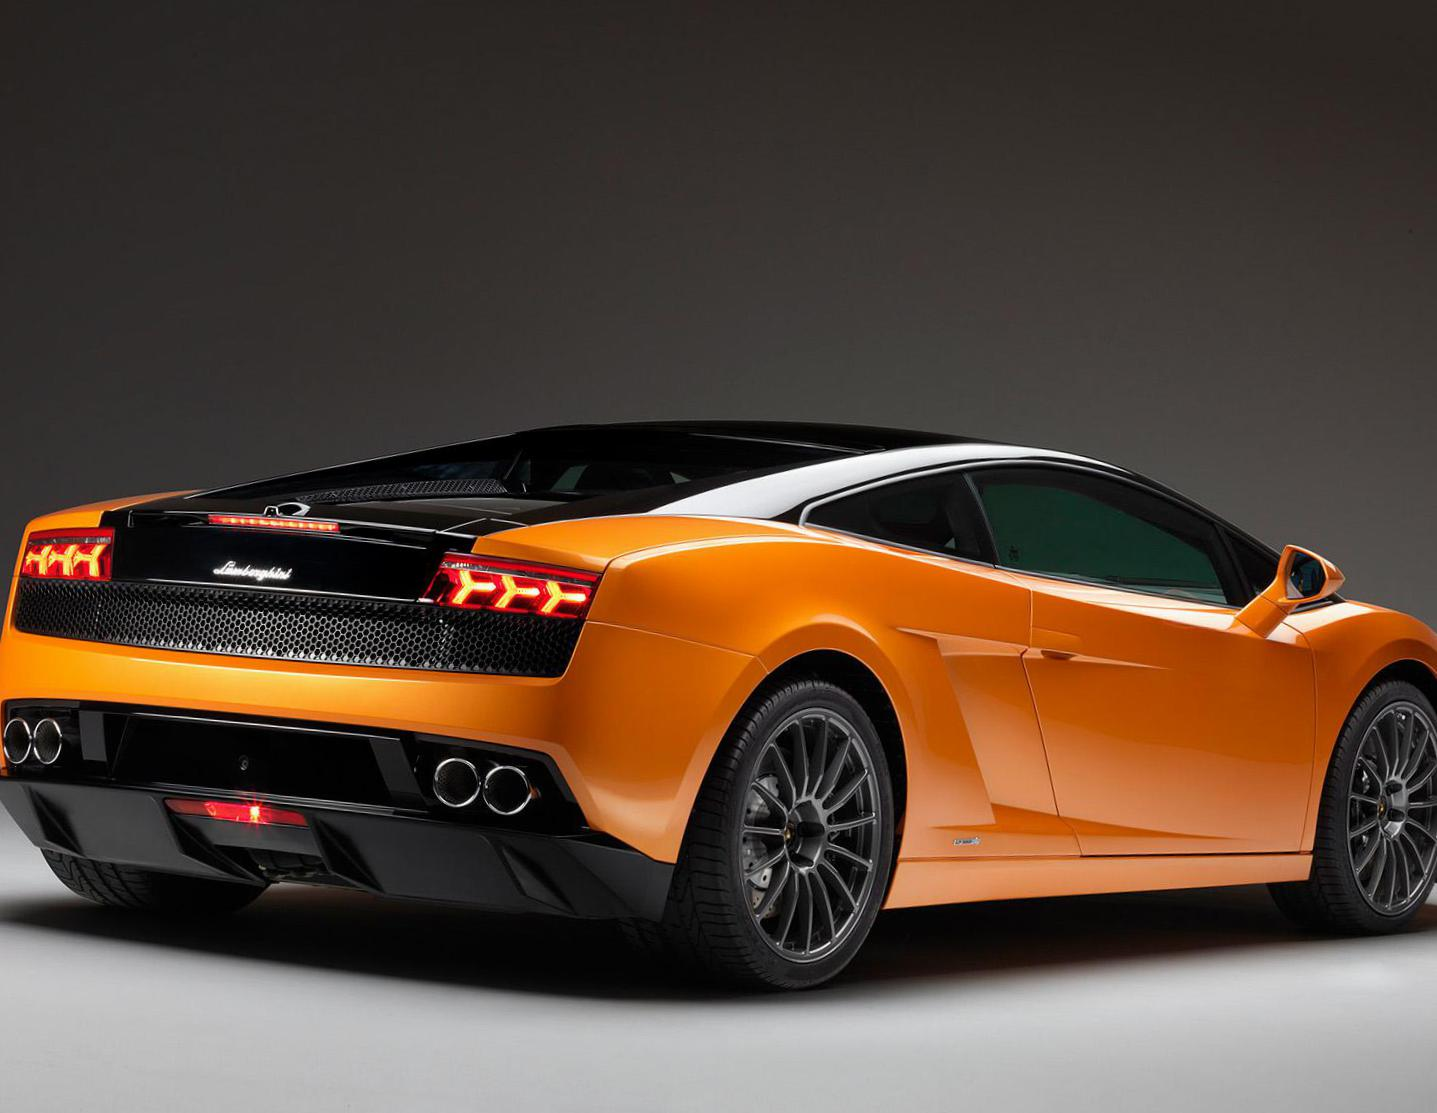 Lamborghini Gallardo LP 560-4 Bicolore Specifications hatchback